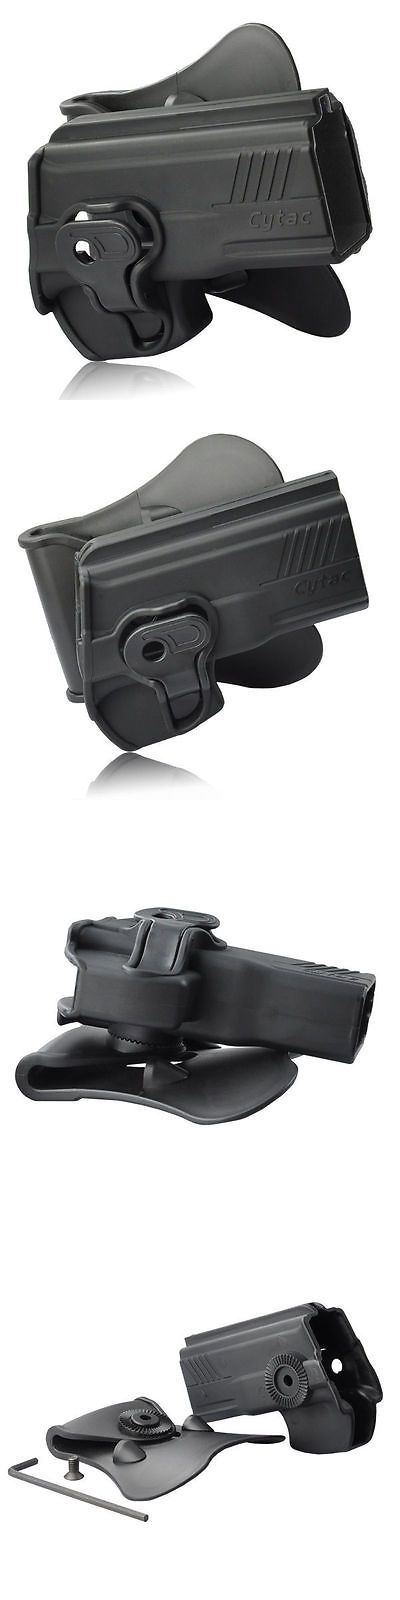 Holsters 177885: Tactical Scorpion Pt840 Pt809 Modular Level Ii Retention Polymer Paddle Holster -> BUY IT NOW ONLY: $47.95 on eBay!